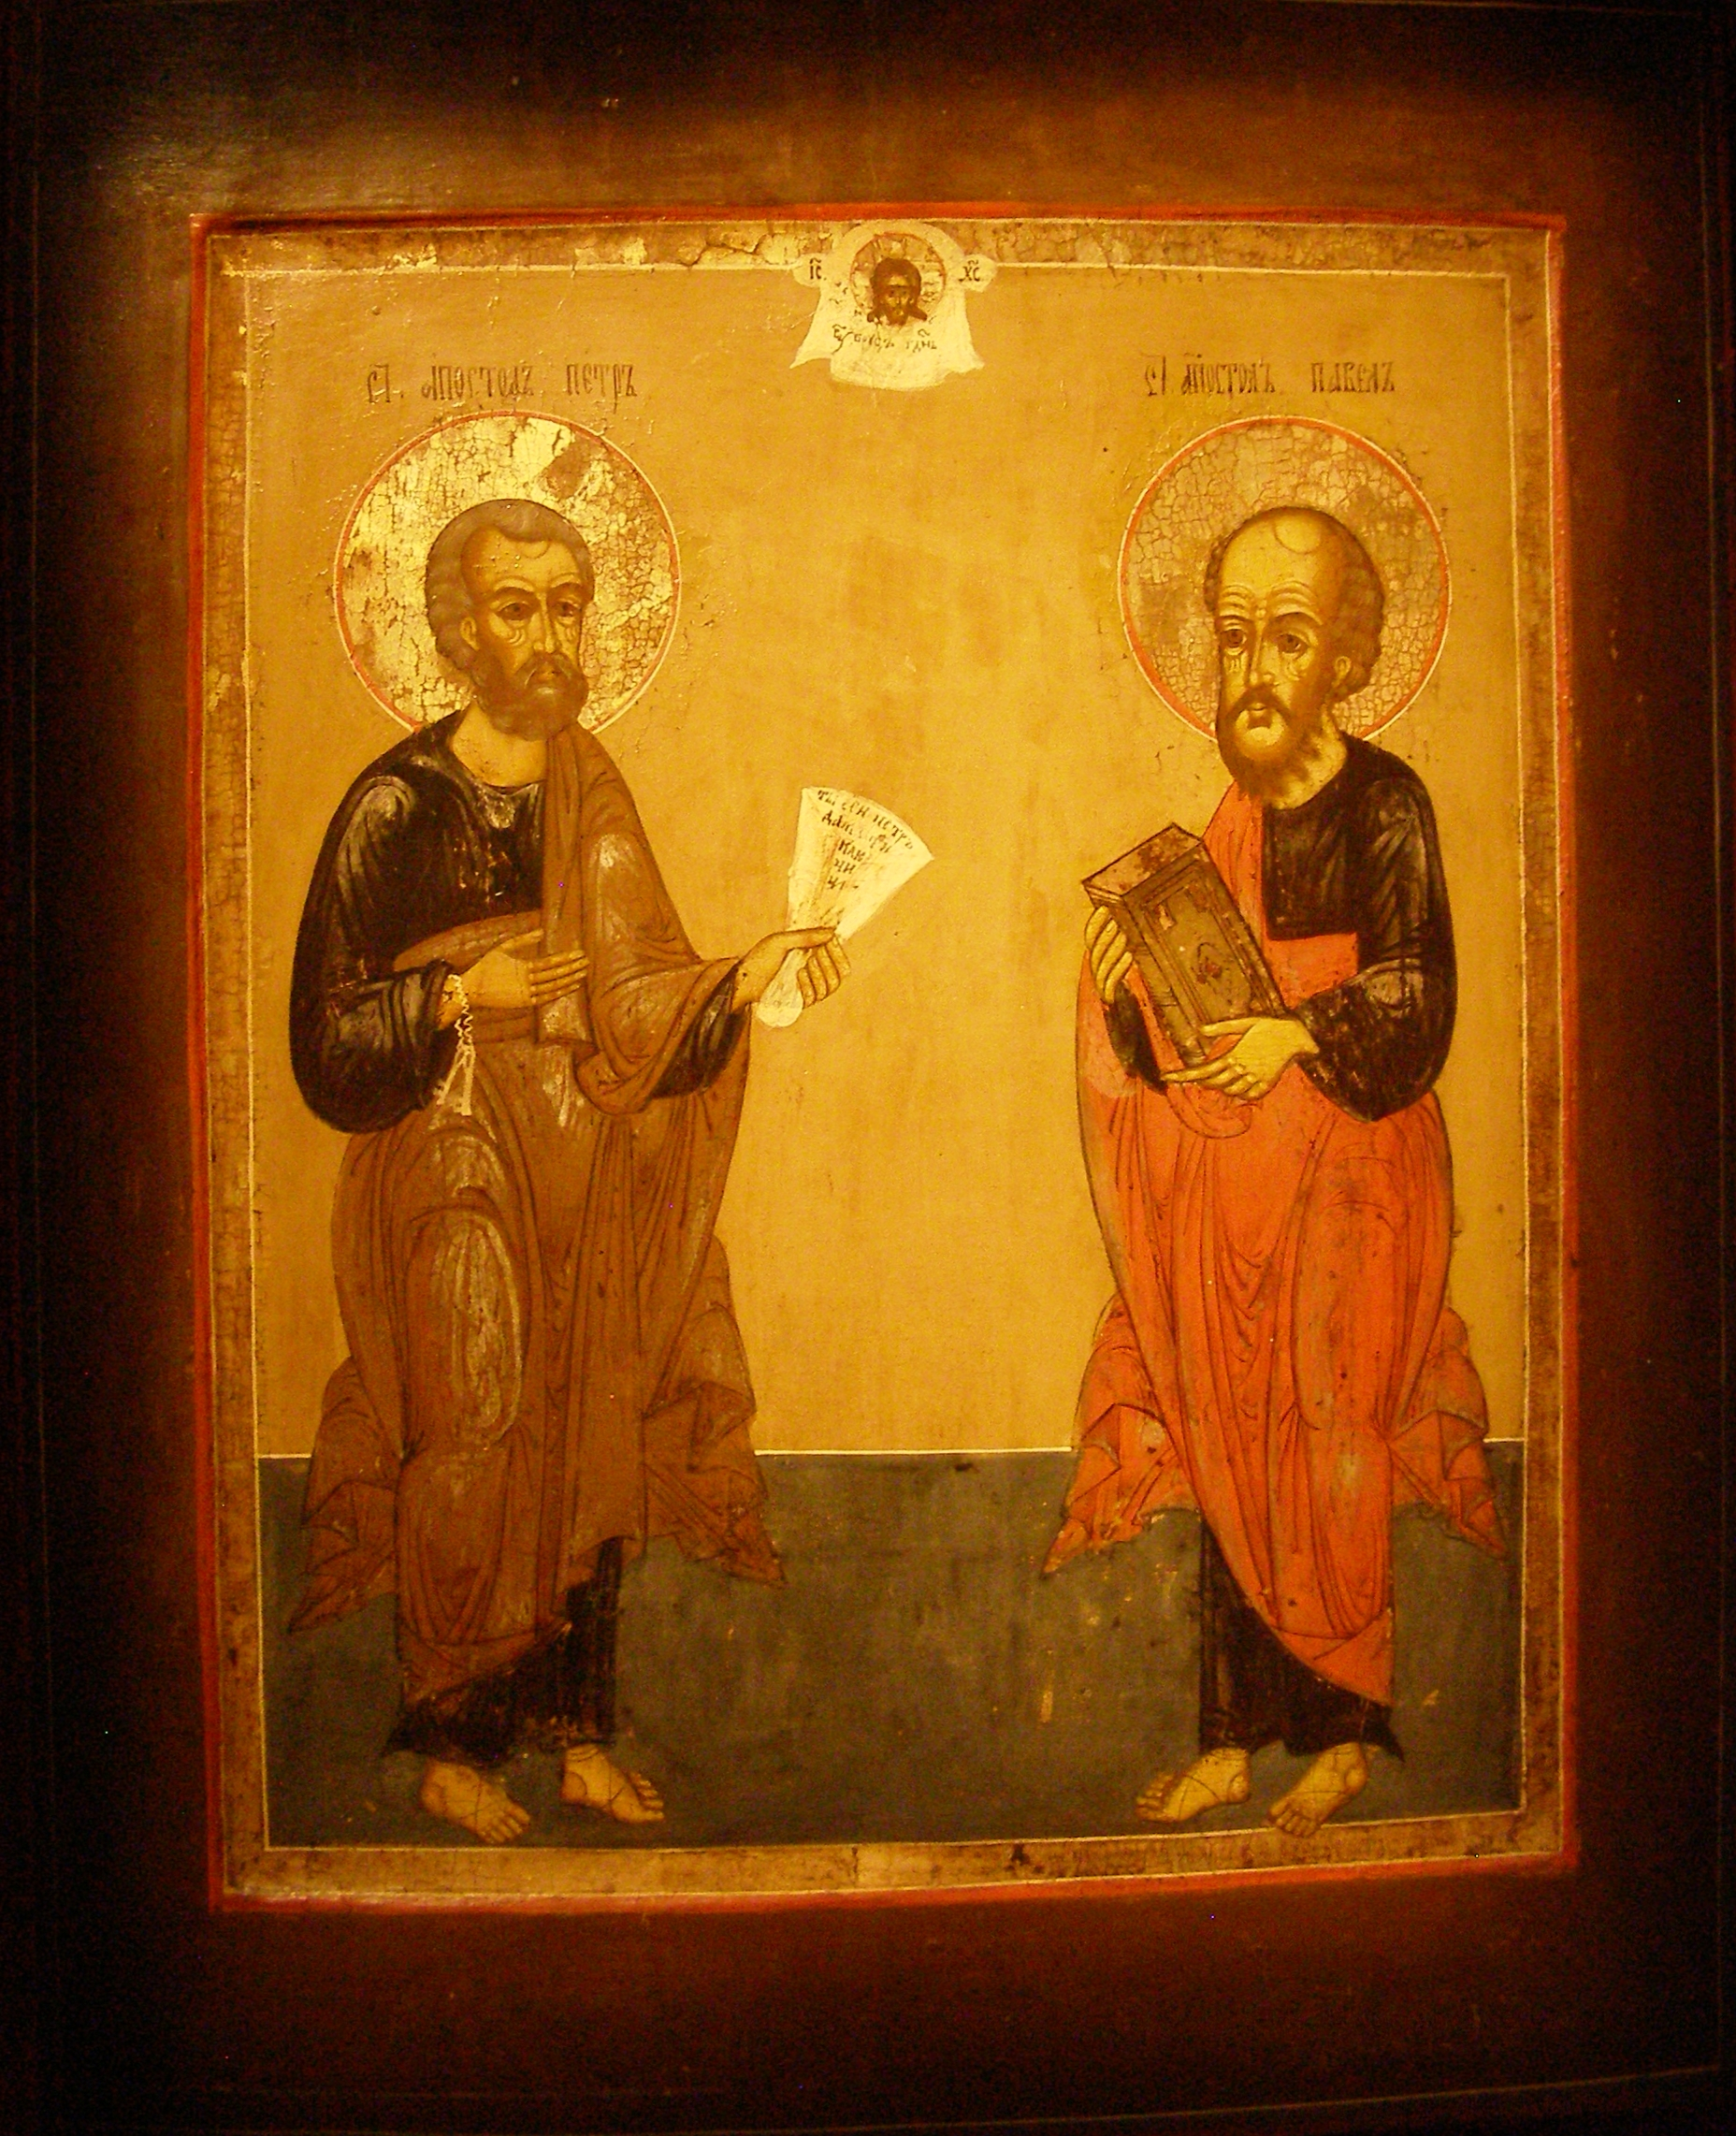 Saint Peter and Paul: Supraśl - Museum of Icons